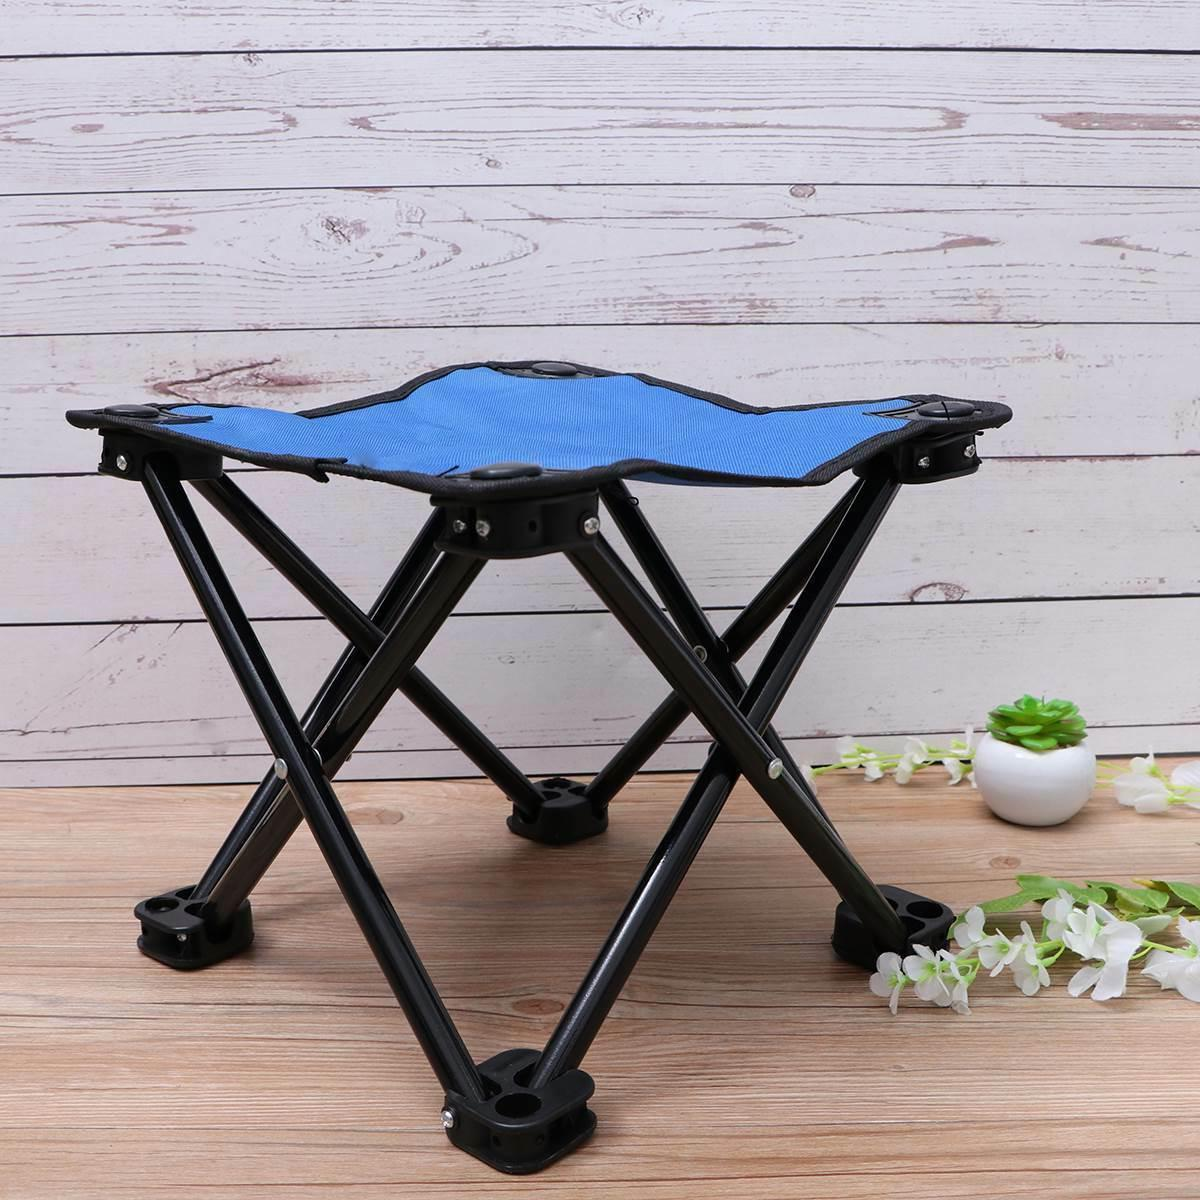 Foldable Fishing Gear Seat for